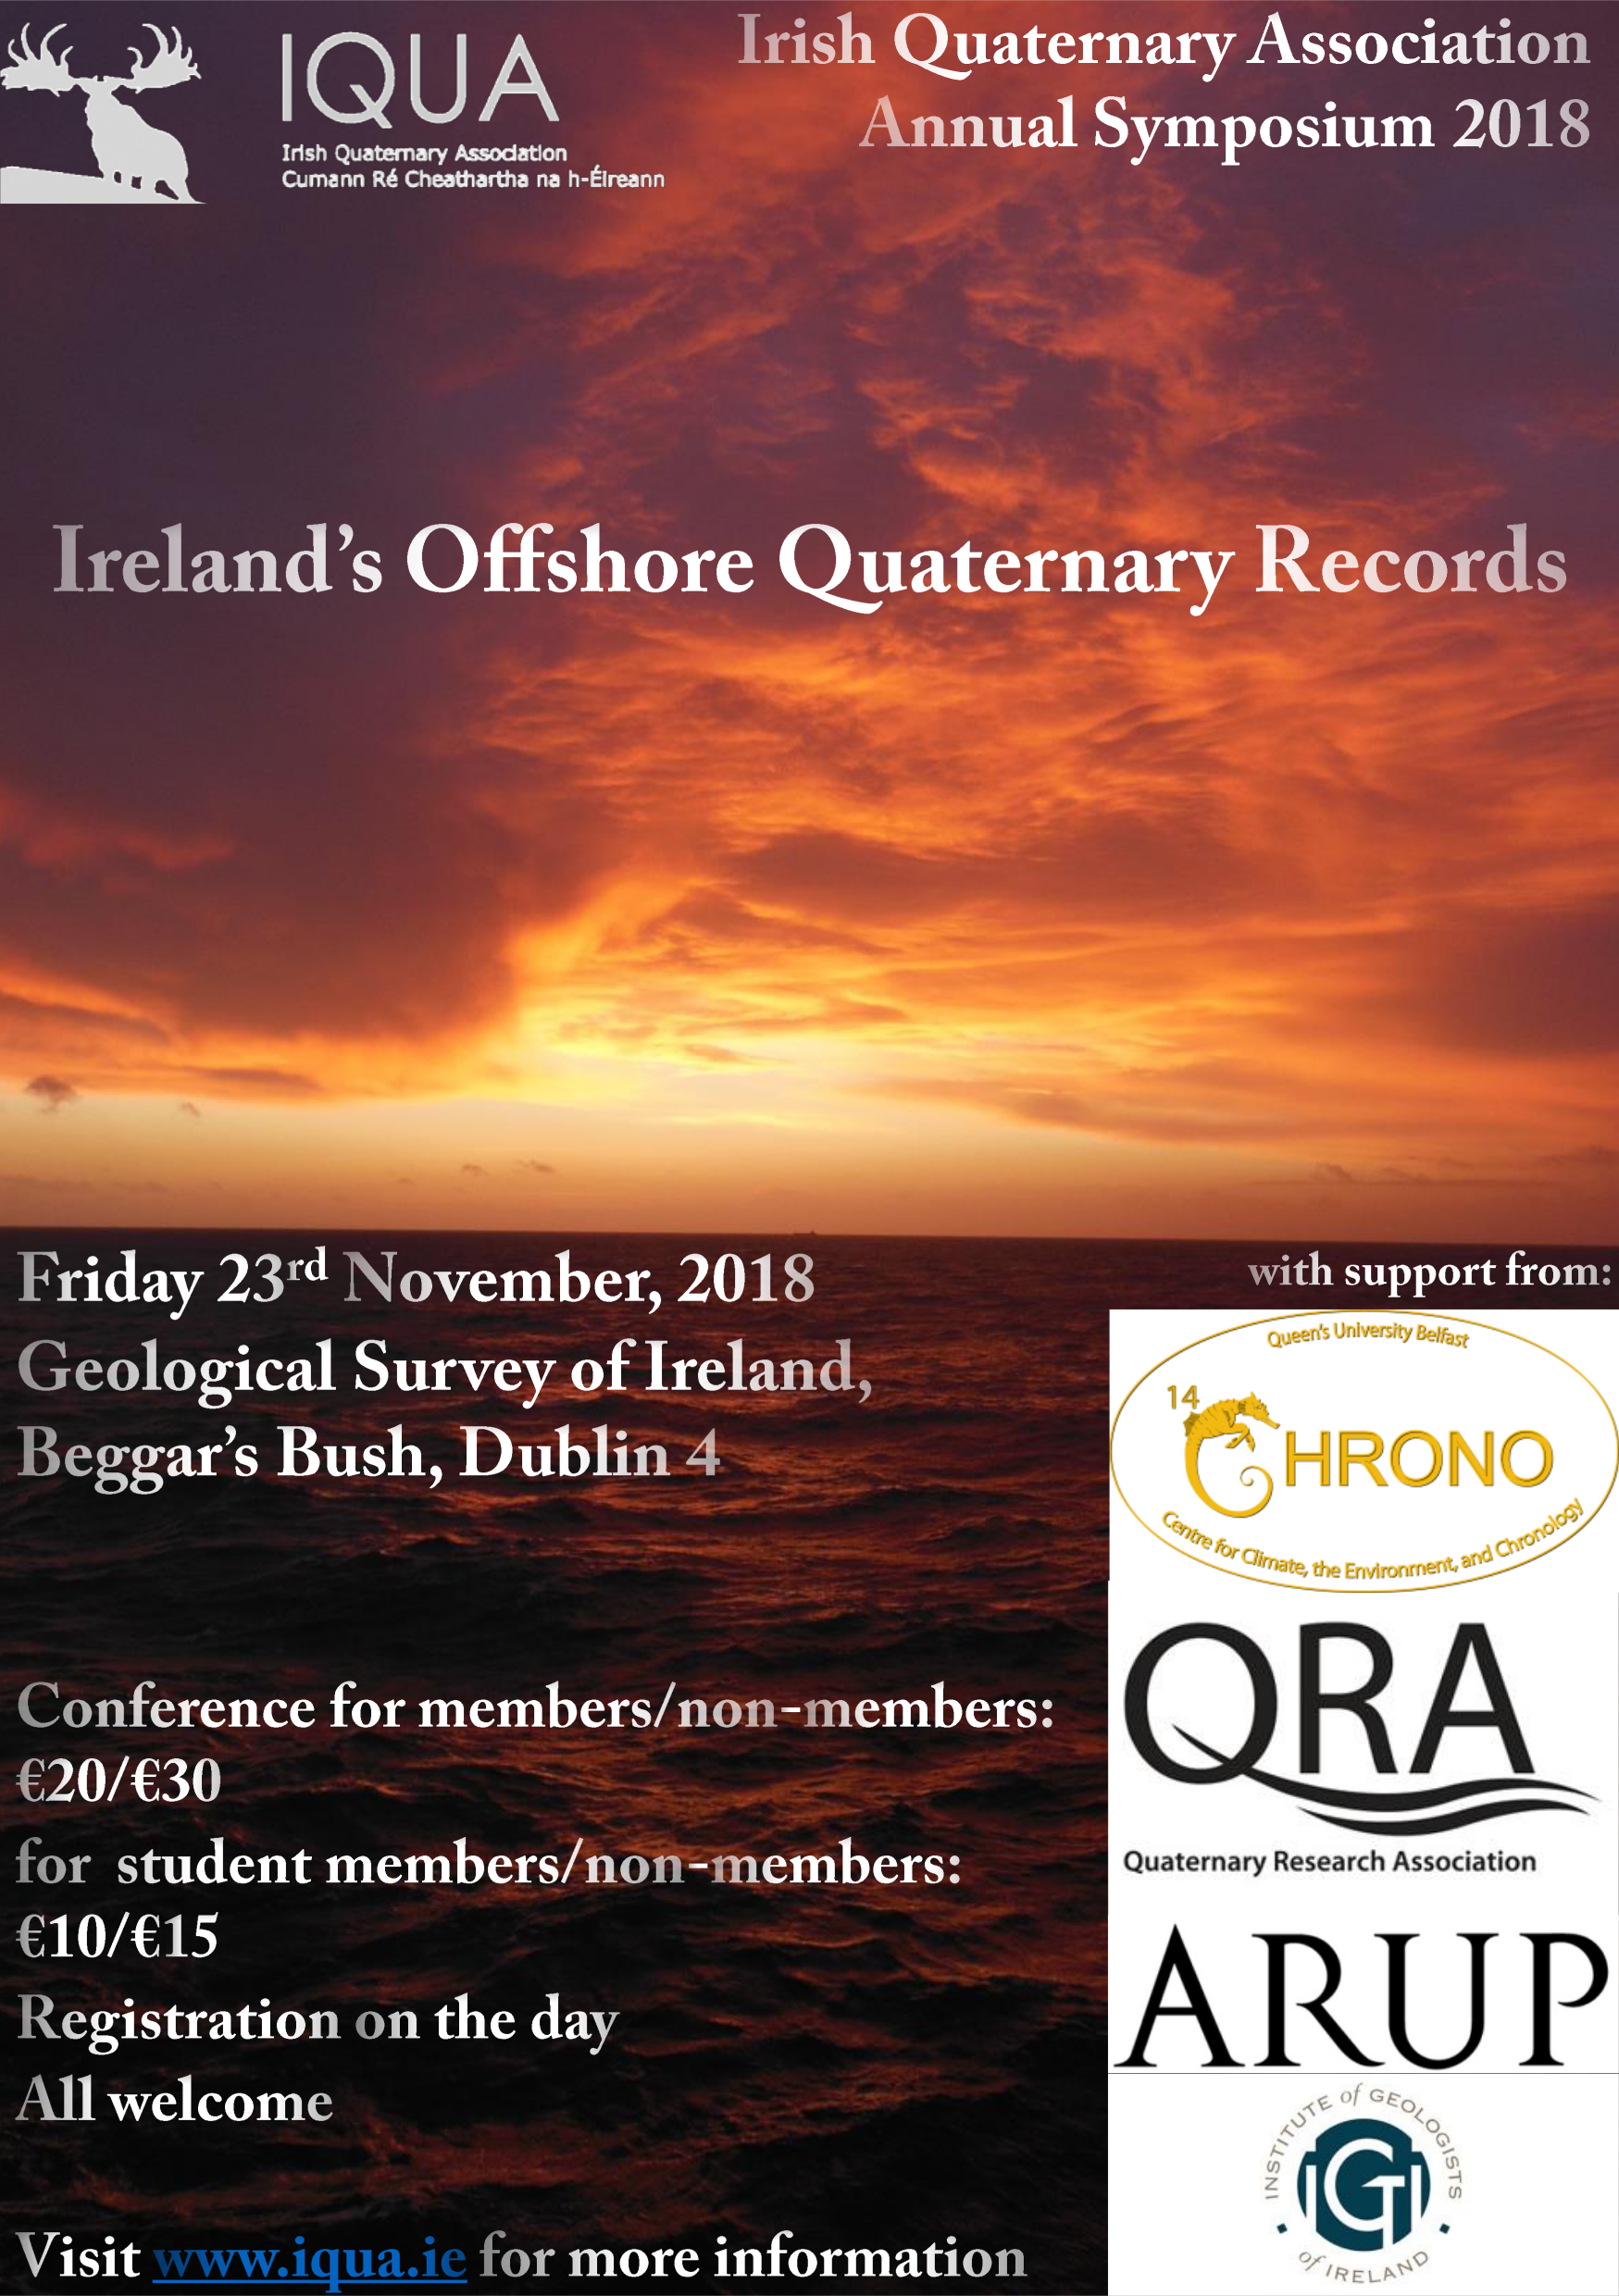 IQUA November 2018 Symposium: Ireland's Offshore Quaternary Records